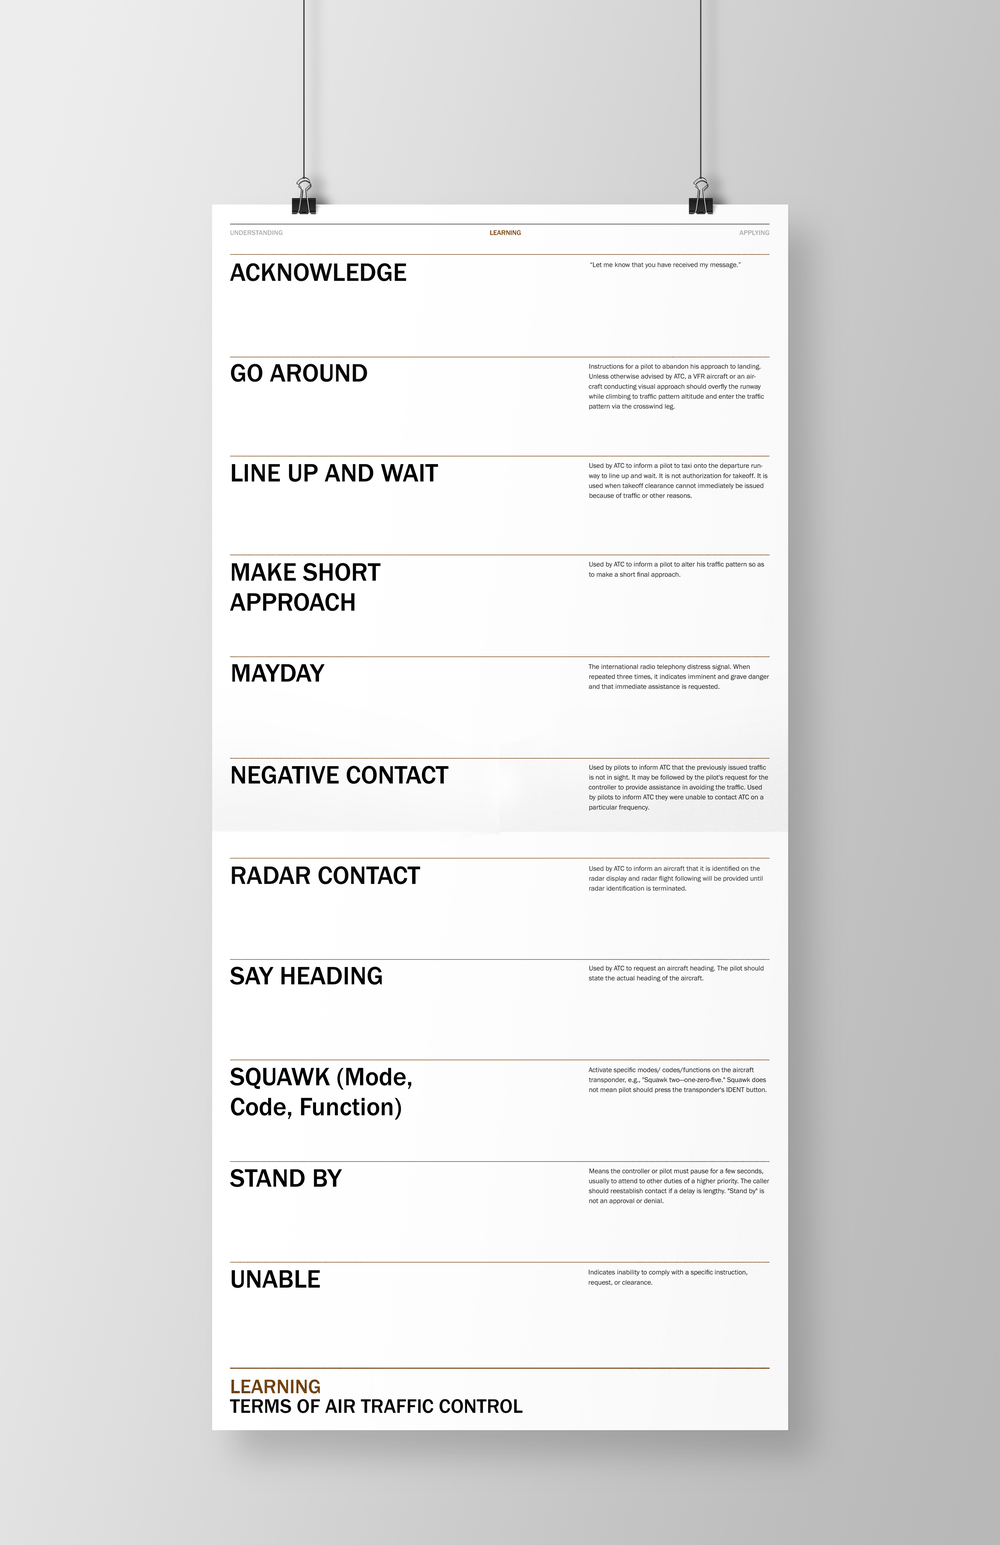 Fold out poster of terms.